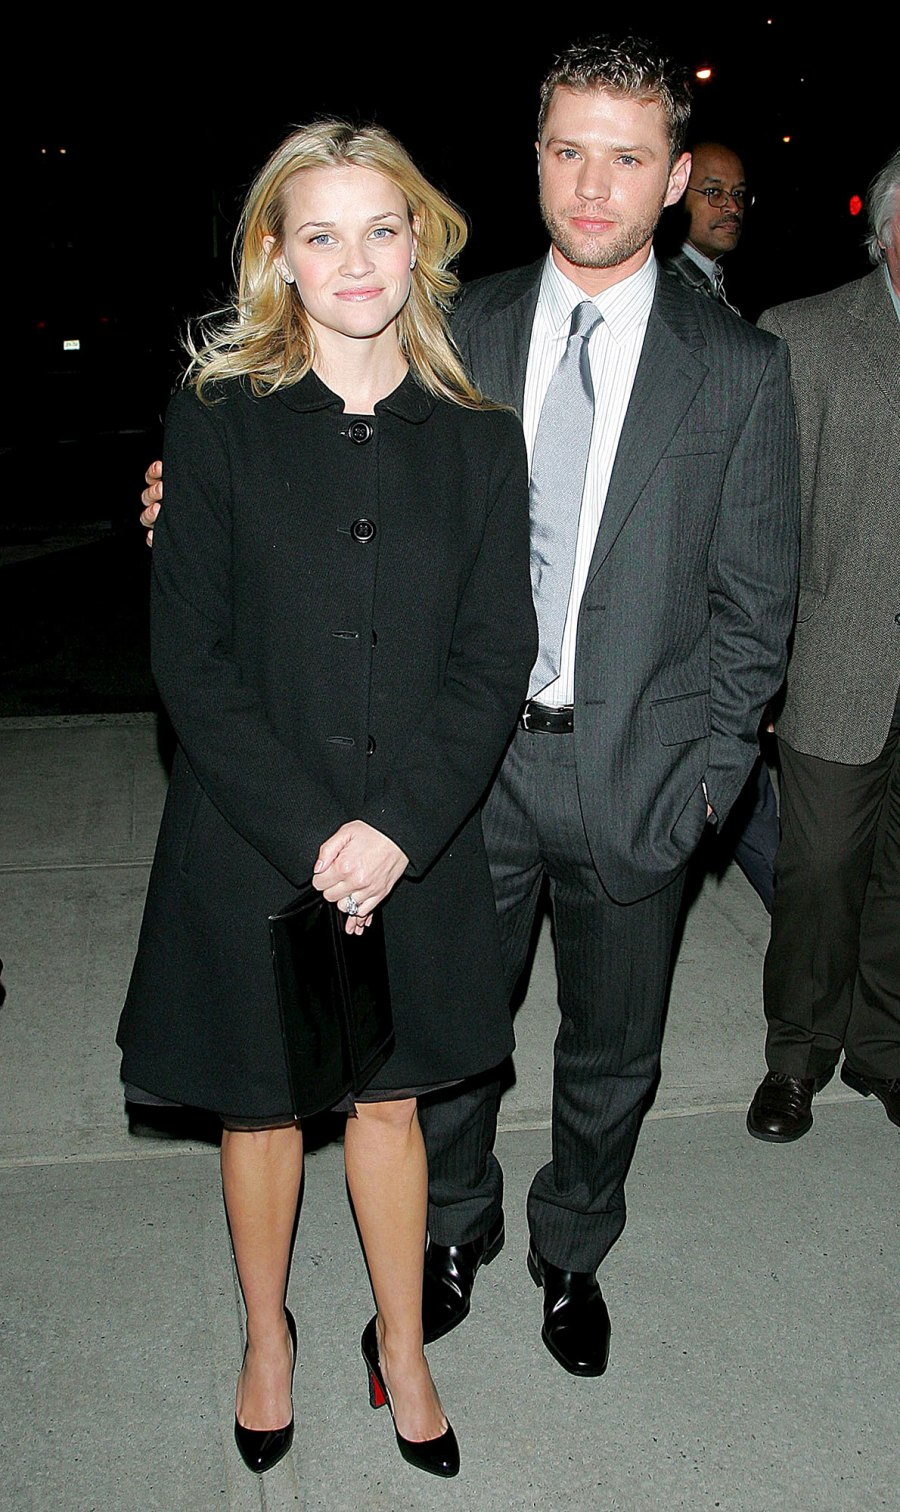 2007 Divorce Final Reese Witherspoon and Ryan Phillippe Ups and Downs